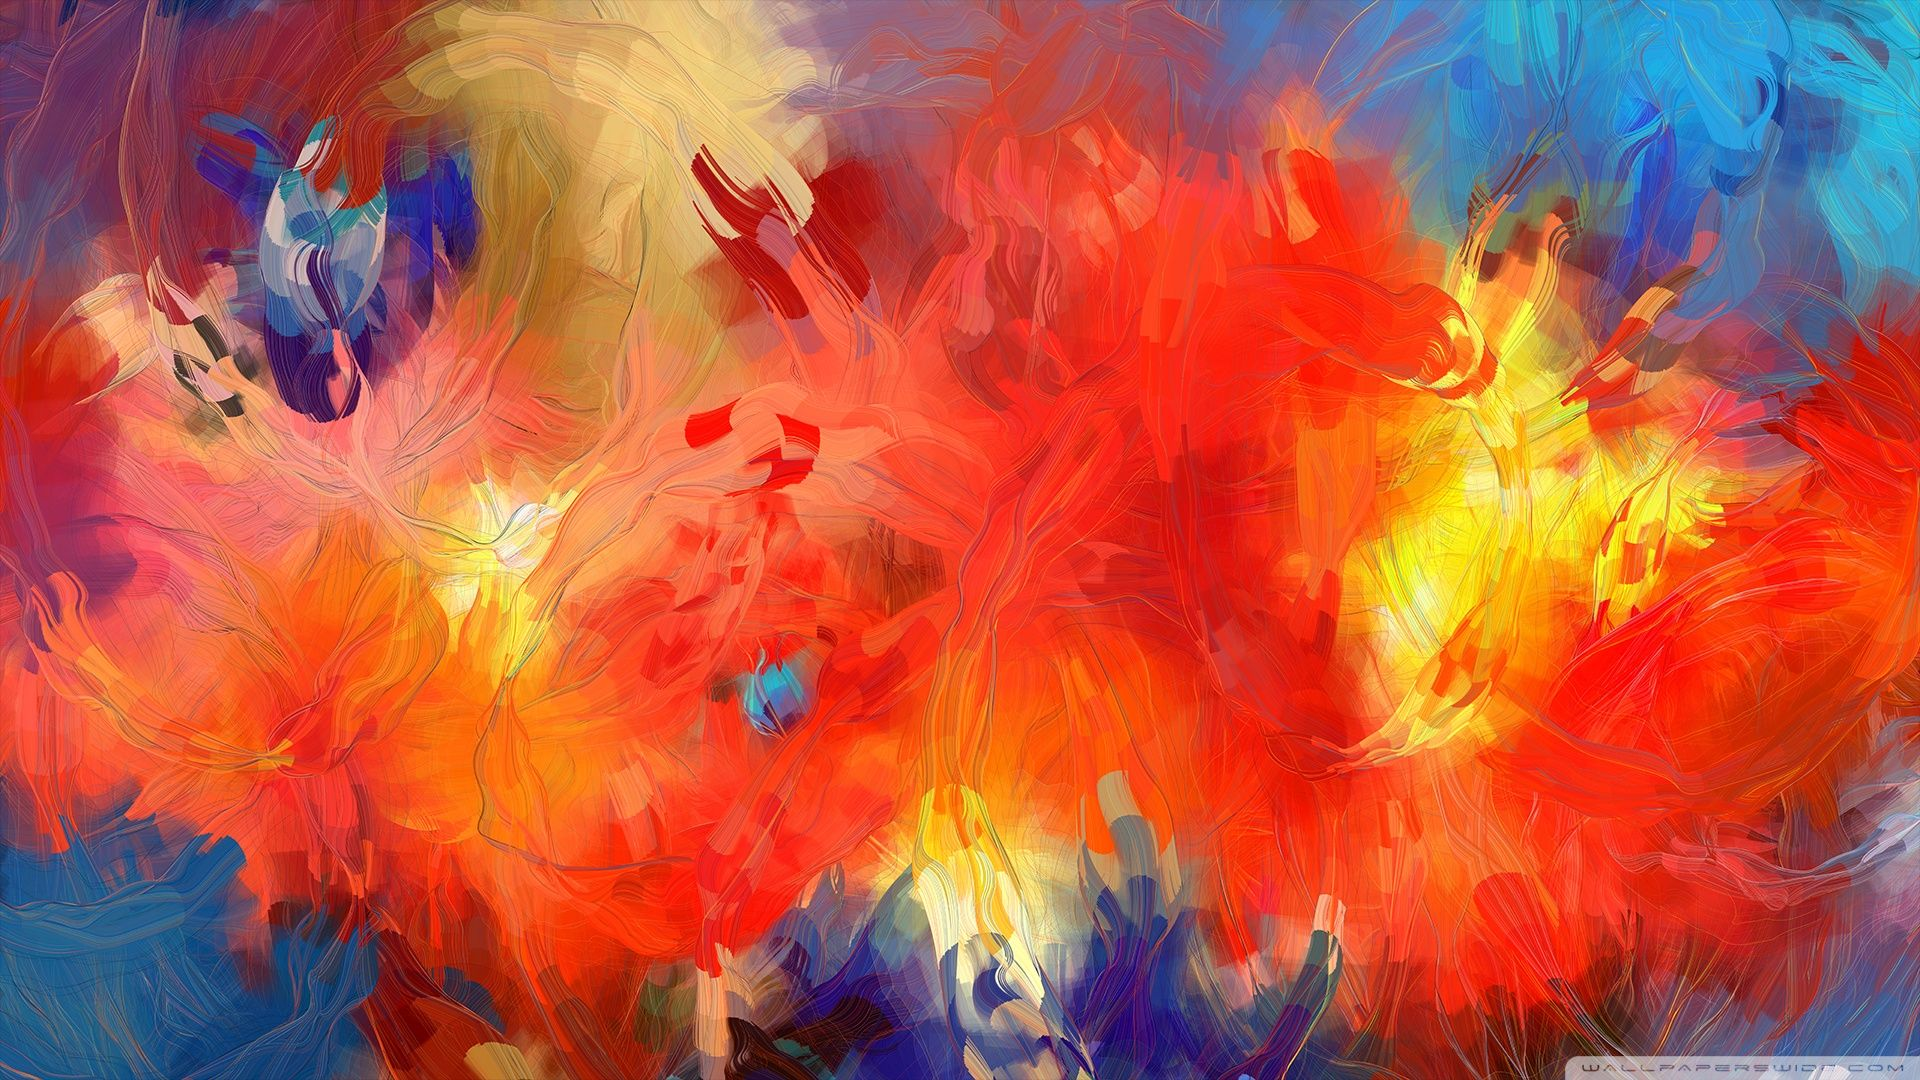 Famous Abstract Paintings - wallpaper. | Famous Art Pieces ...